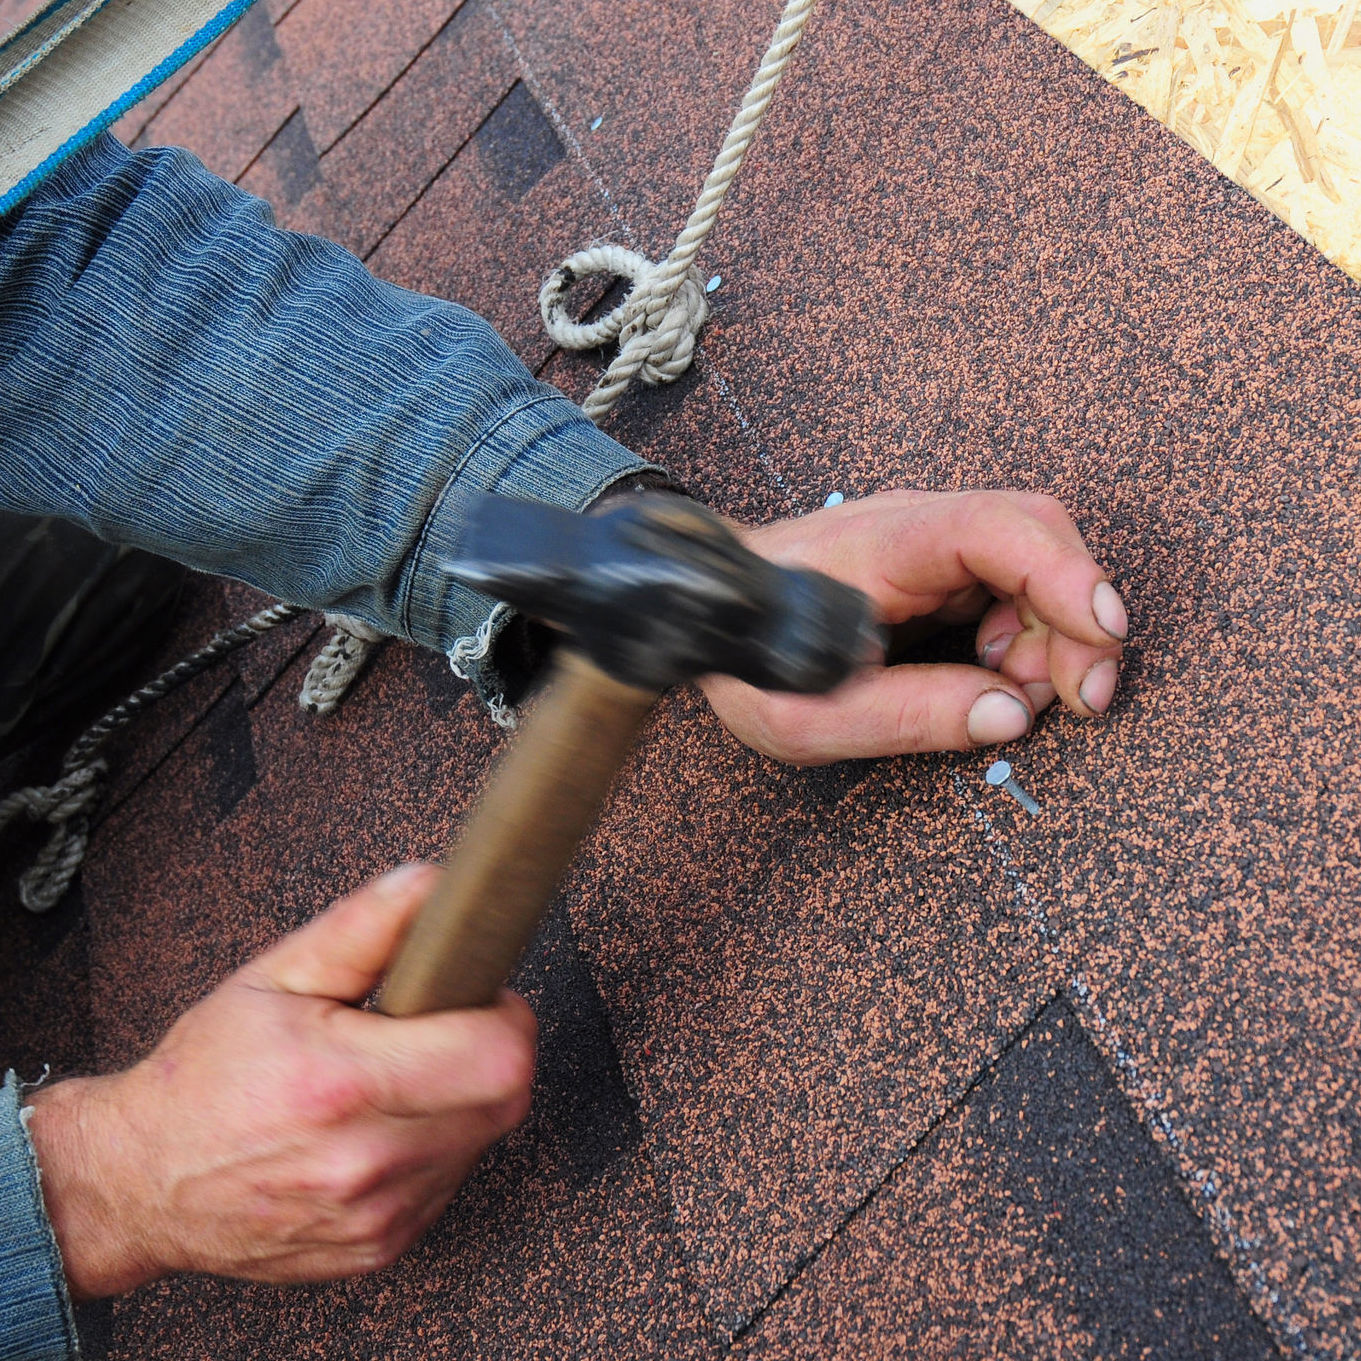 Roof repair company taking care of roof